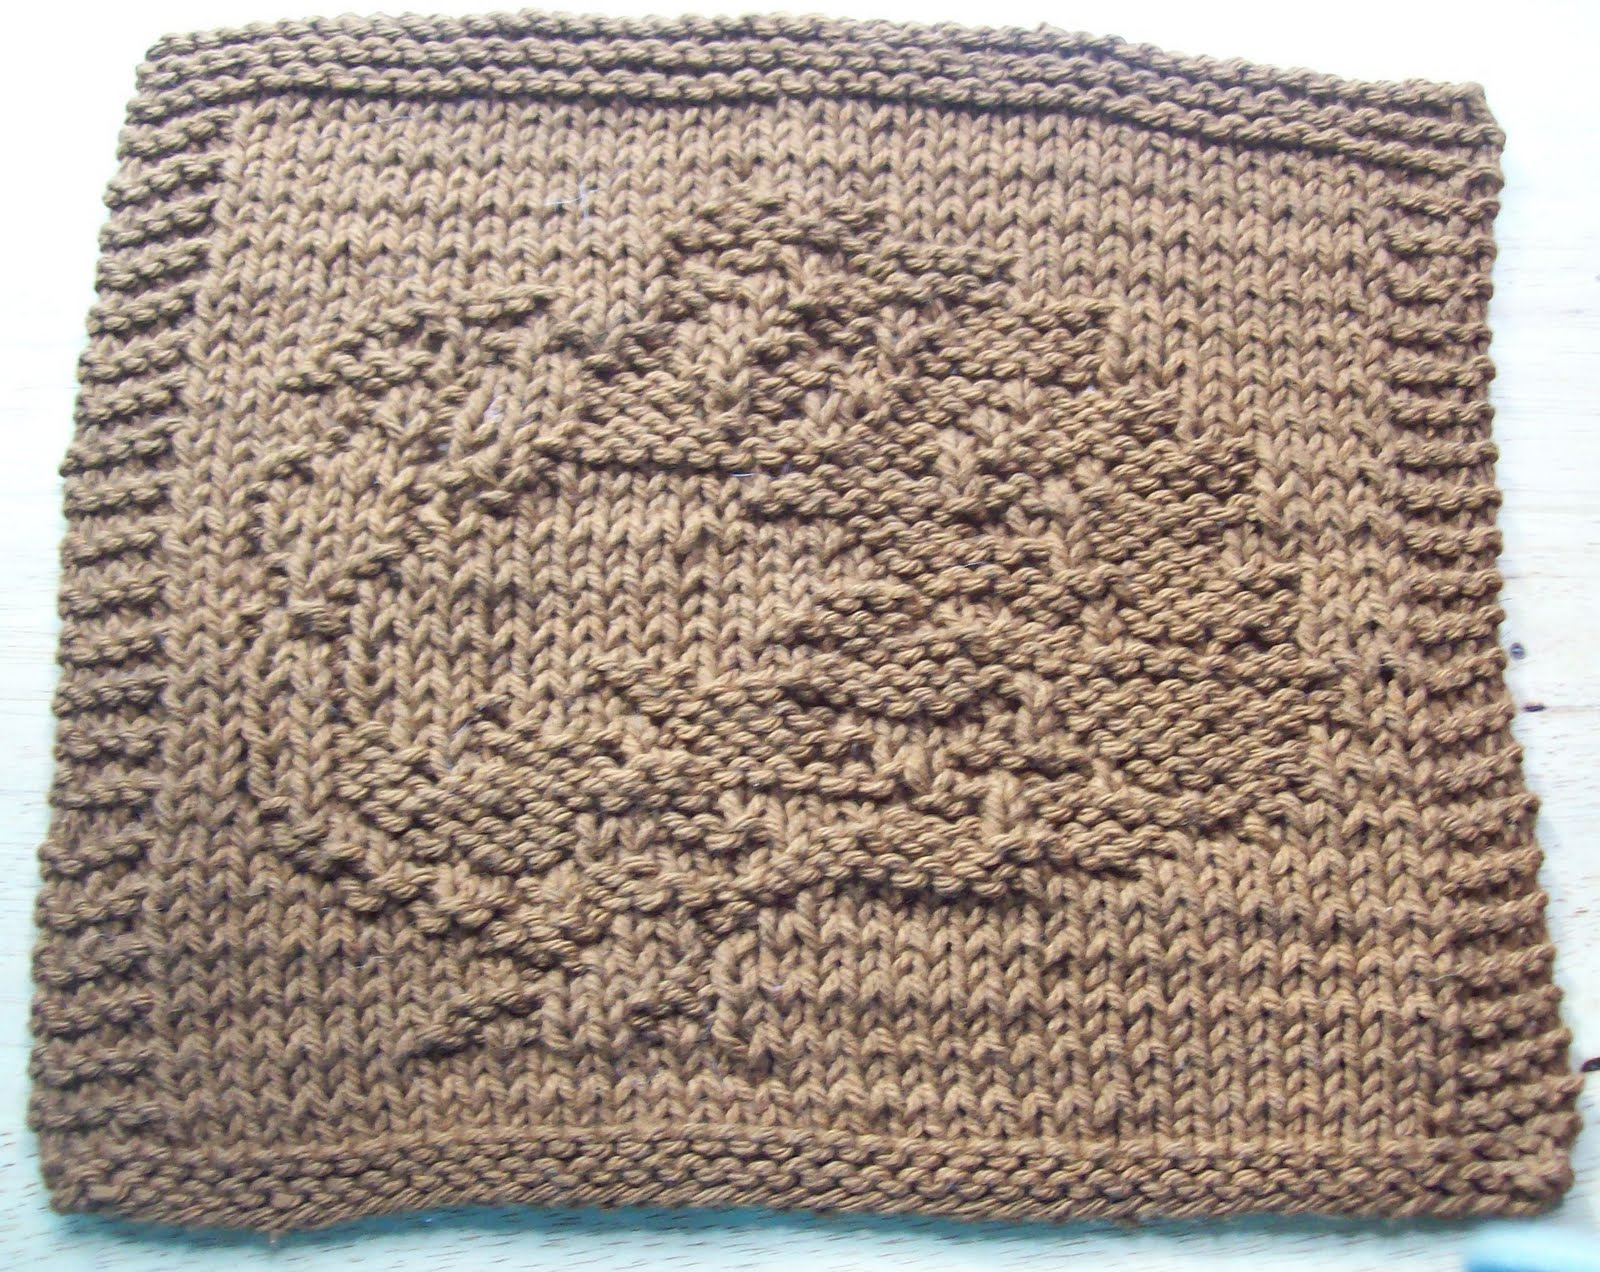 Free Knitting Pattern Turkey Dishcloth : DigKnitty Designs: Turkey Too Knit Dishcloth Pattern